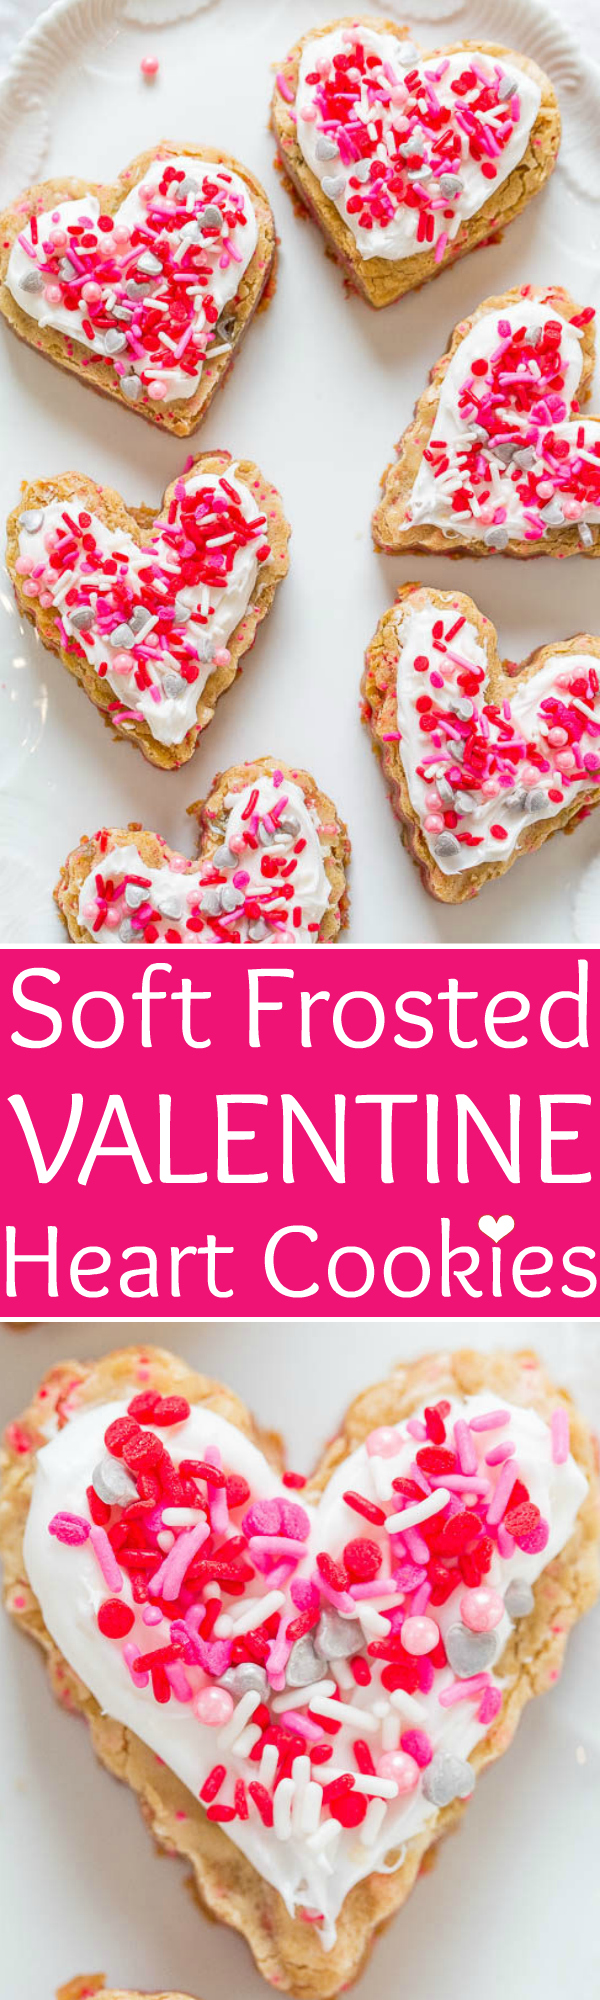 Frosted Heart Cookies — These heart cookies are soft, chewy, dense, made in one bowl, and you don't have to roll them out. The easiest Valentine's Day sugar cookies ever!